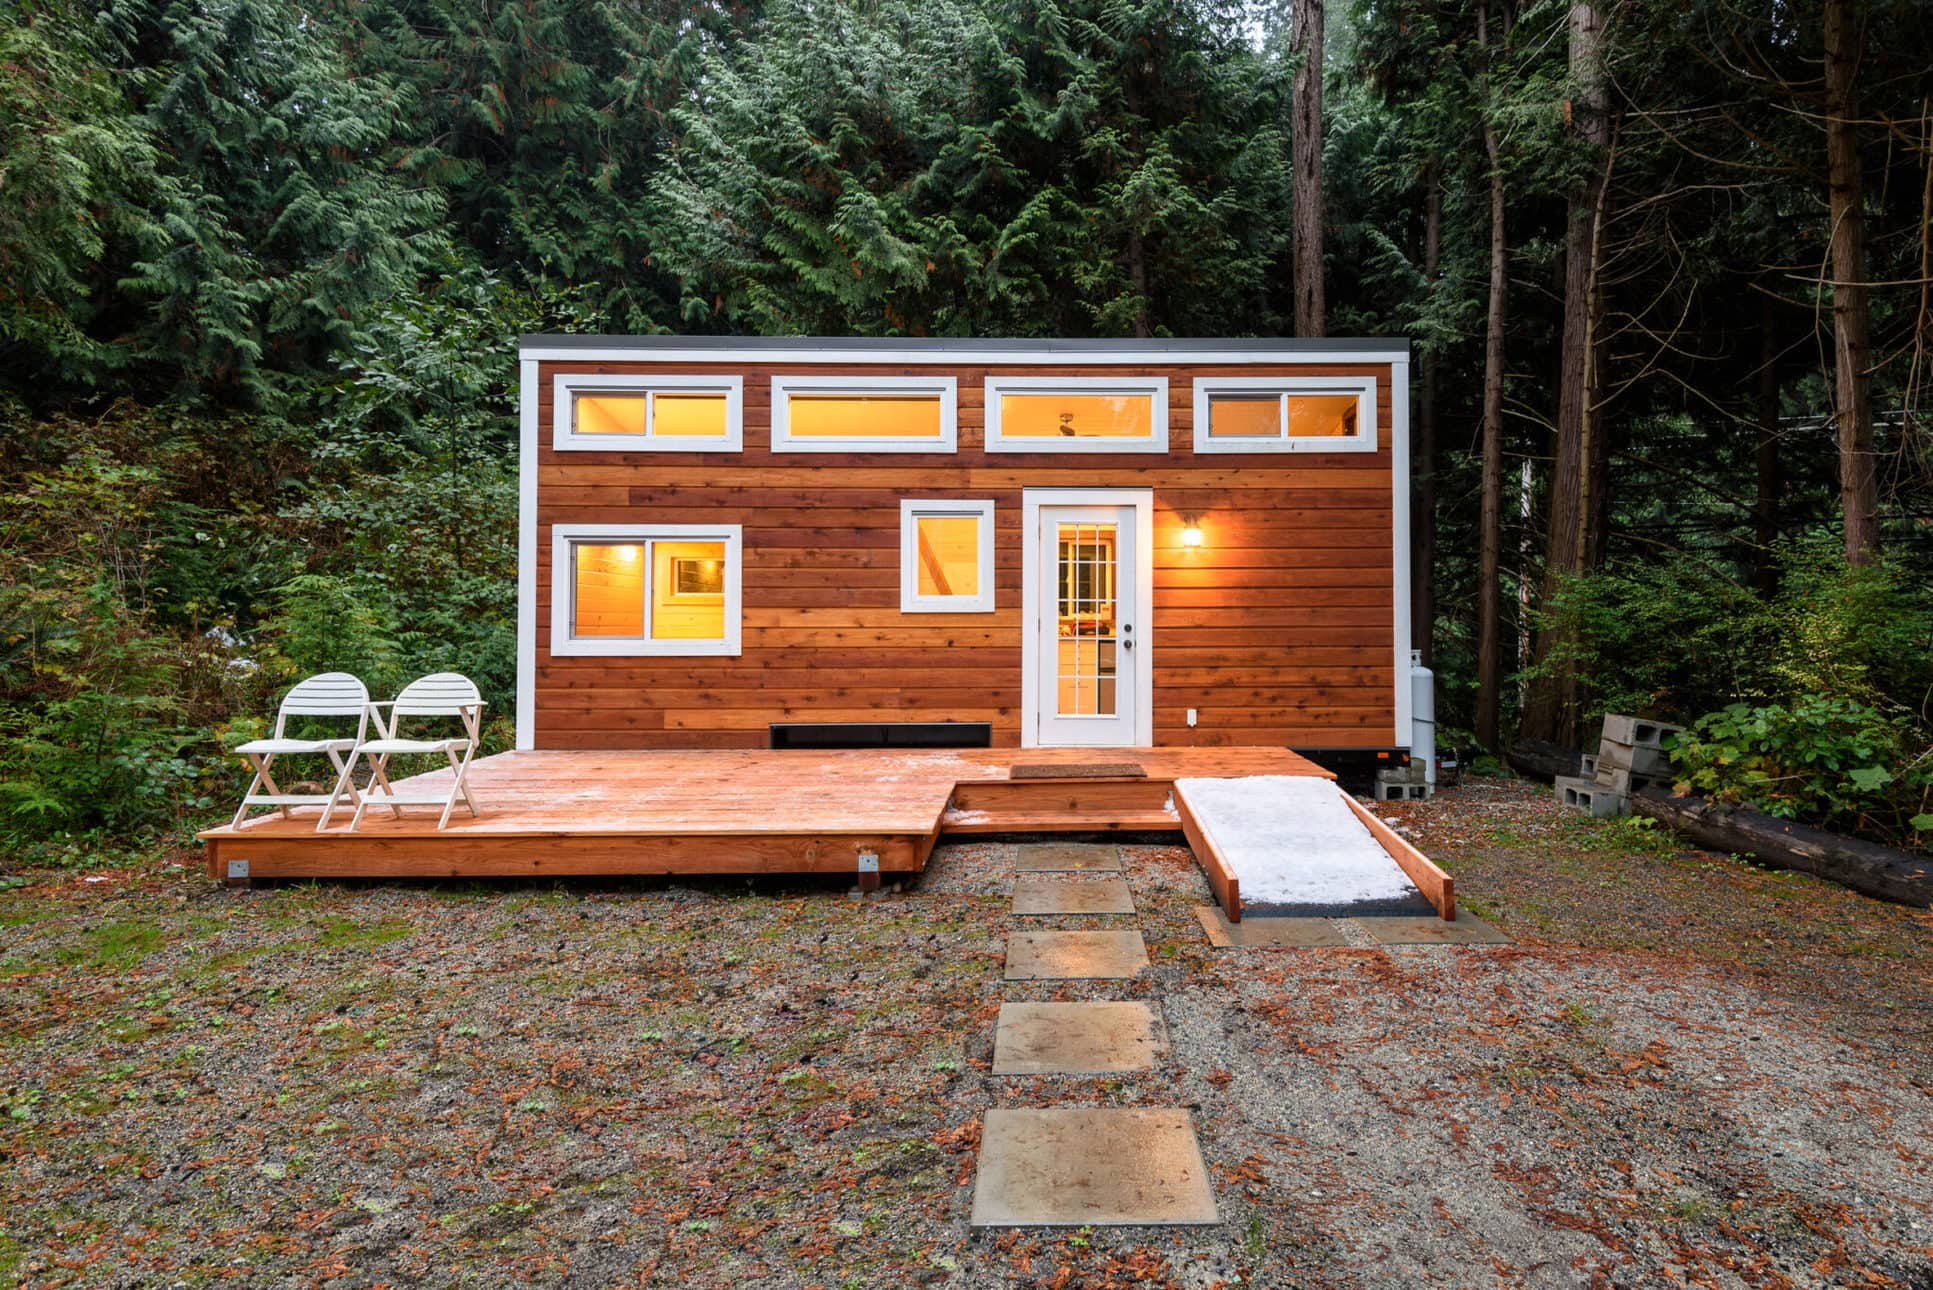 Reclaimed Wood Exterior Siding: Why Homeowners Are Transitioning To This Sustainable Siding Method